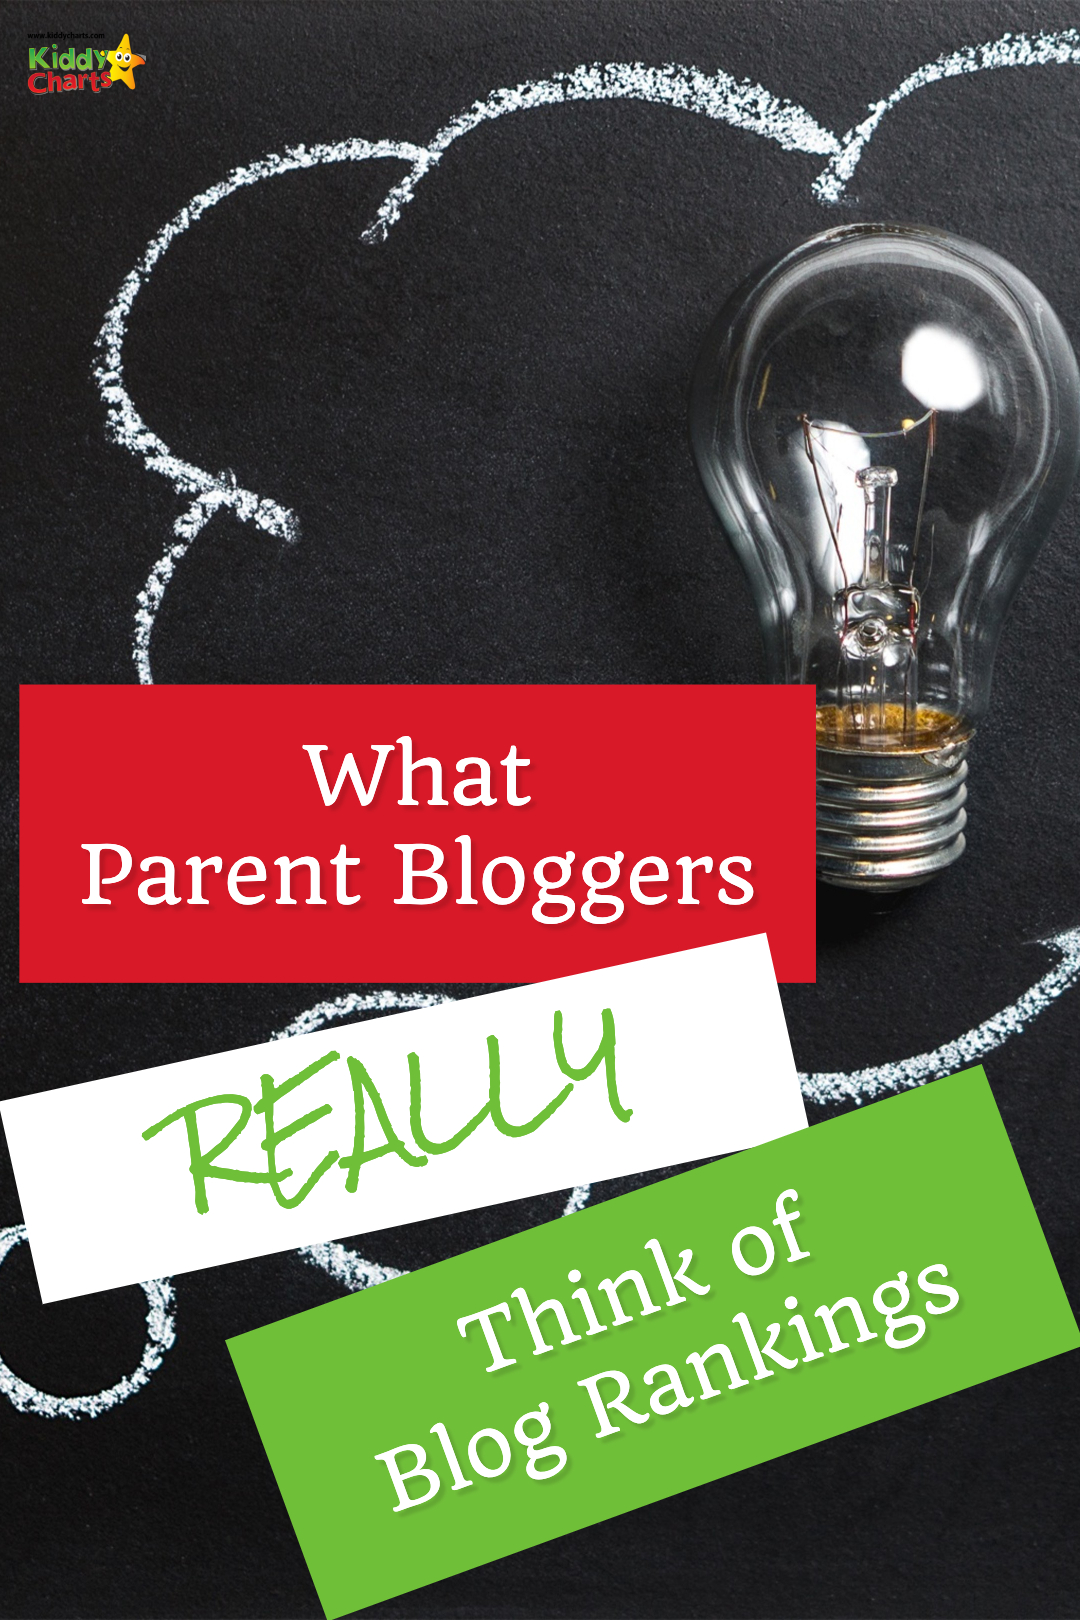 What do parent bloggers and influencers really think of blg rankings - and we mean REALLY! Check it out, and join the discussion too #parentbloggers #blogging #bloggingtips #influencers #parents #marketing #socialmedia